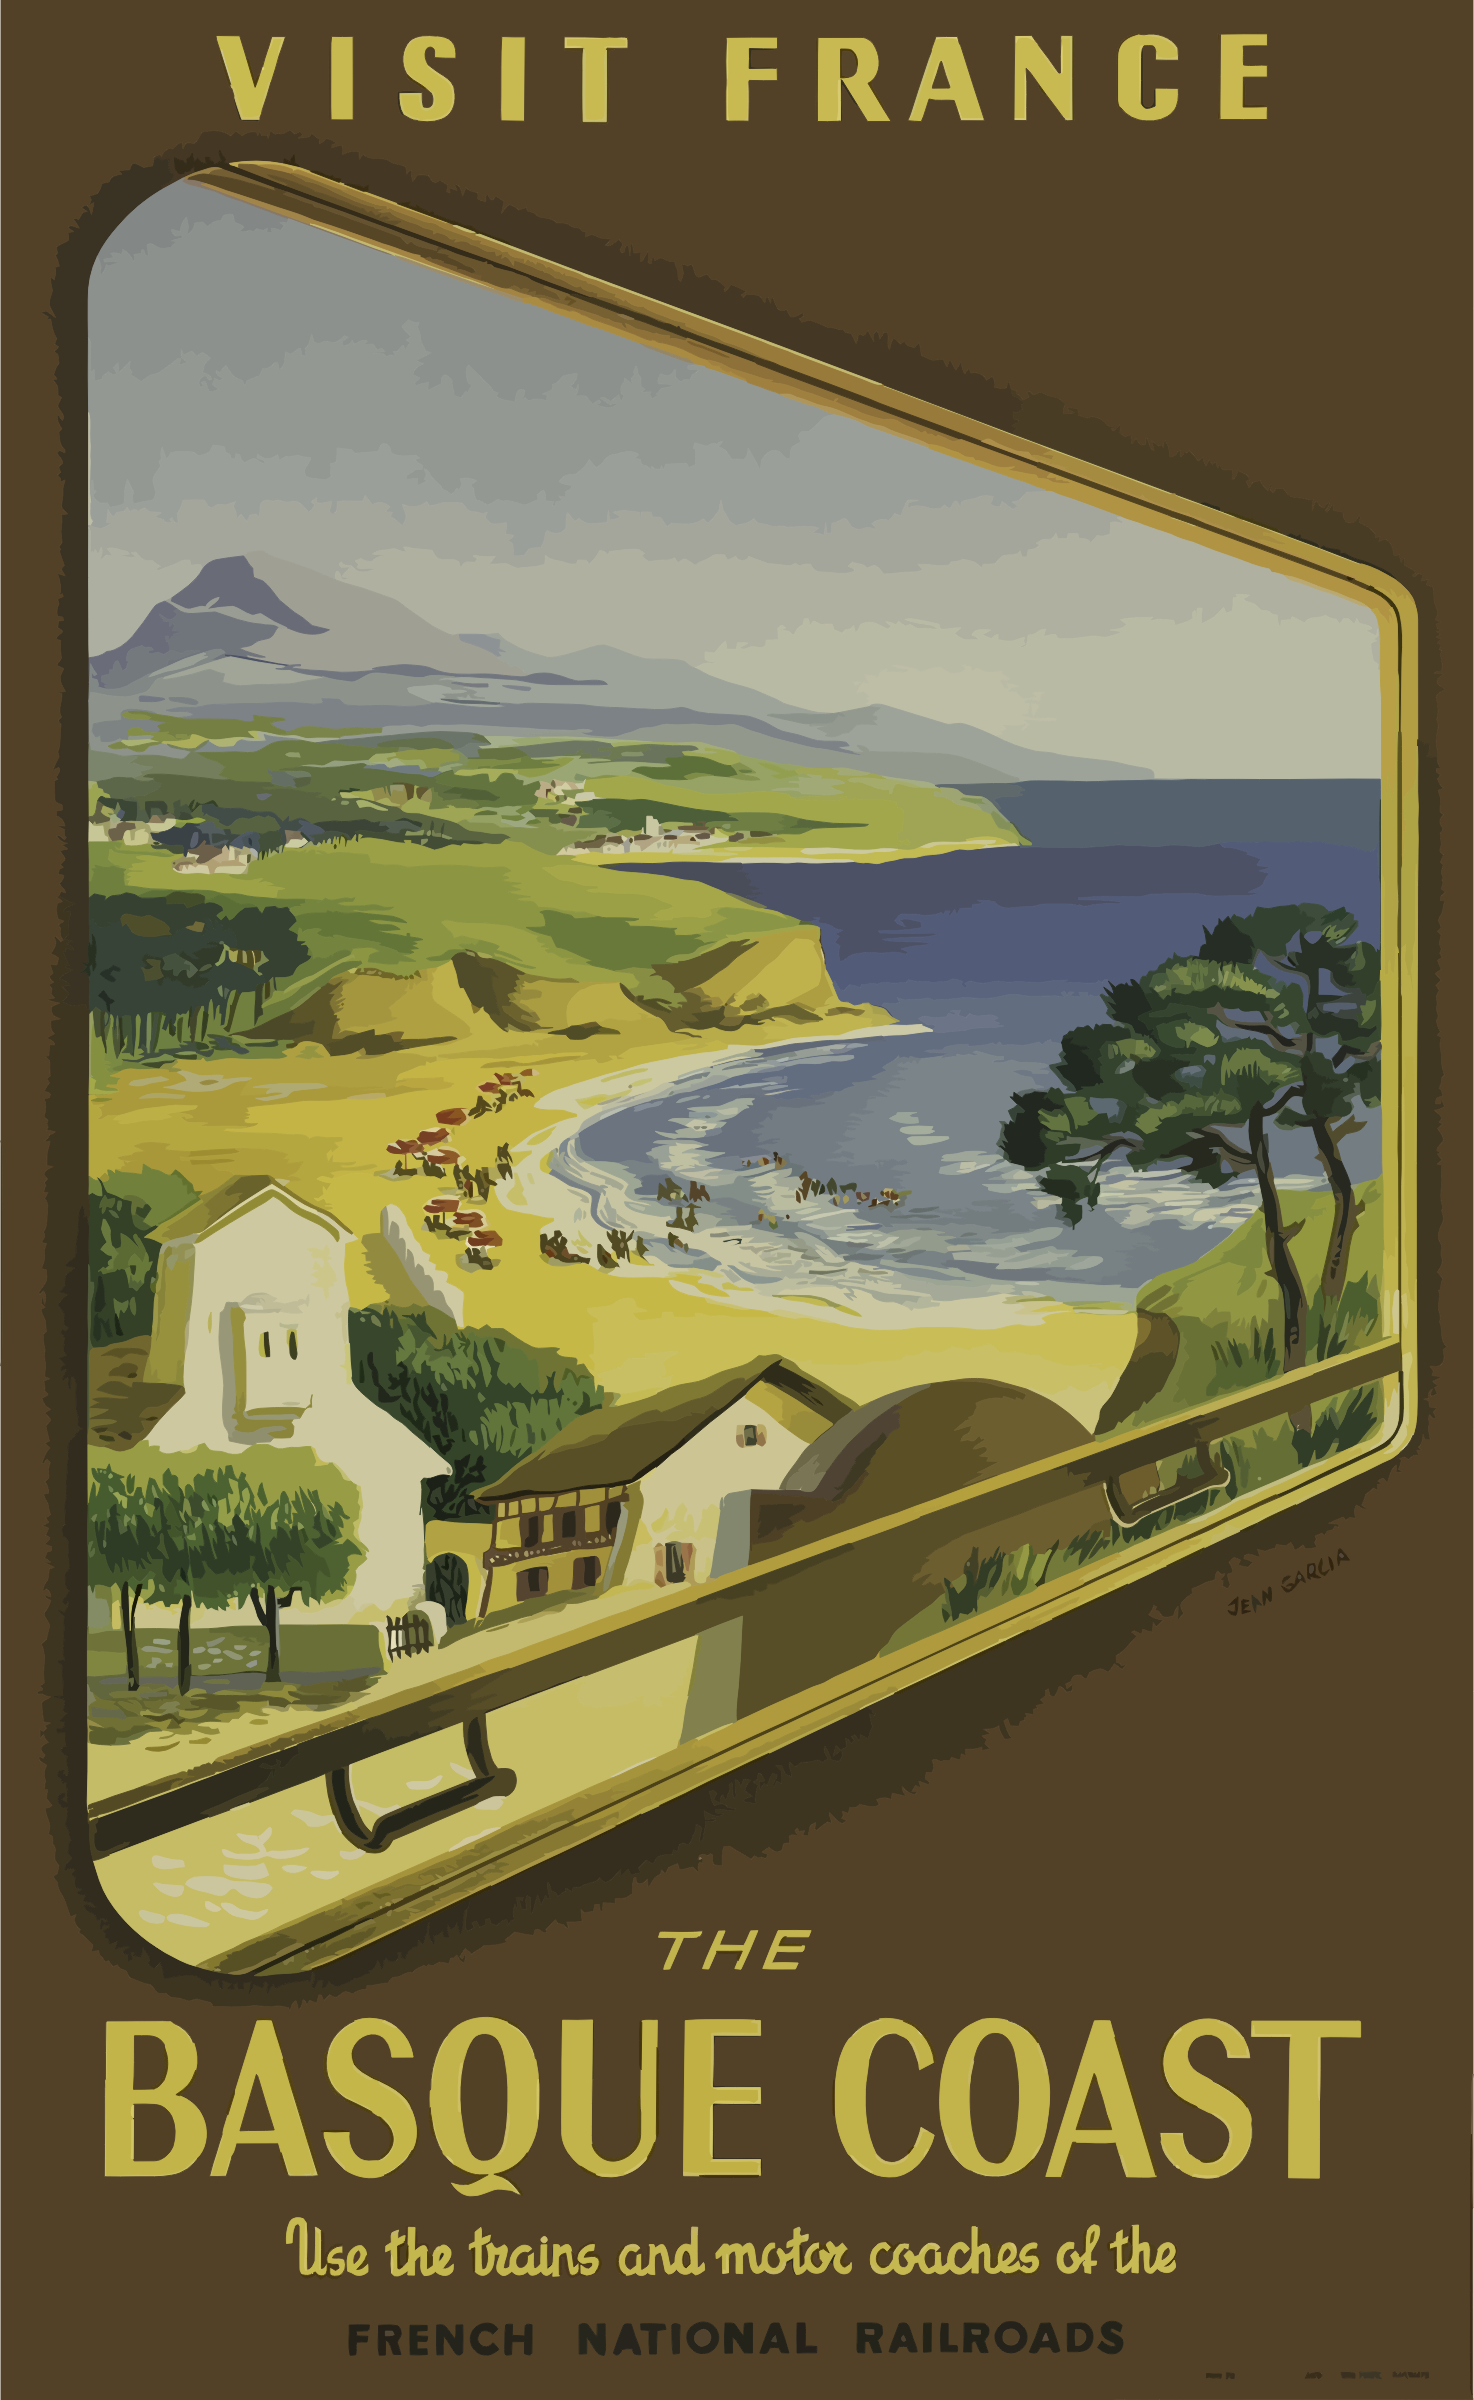 Vintage Travel Poster Basque Coast France by GDJ